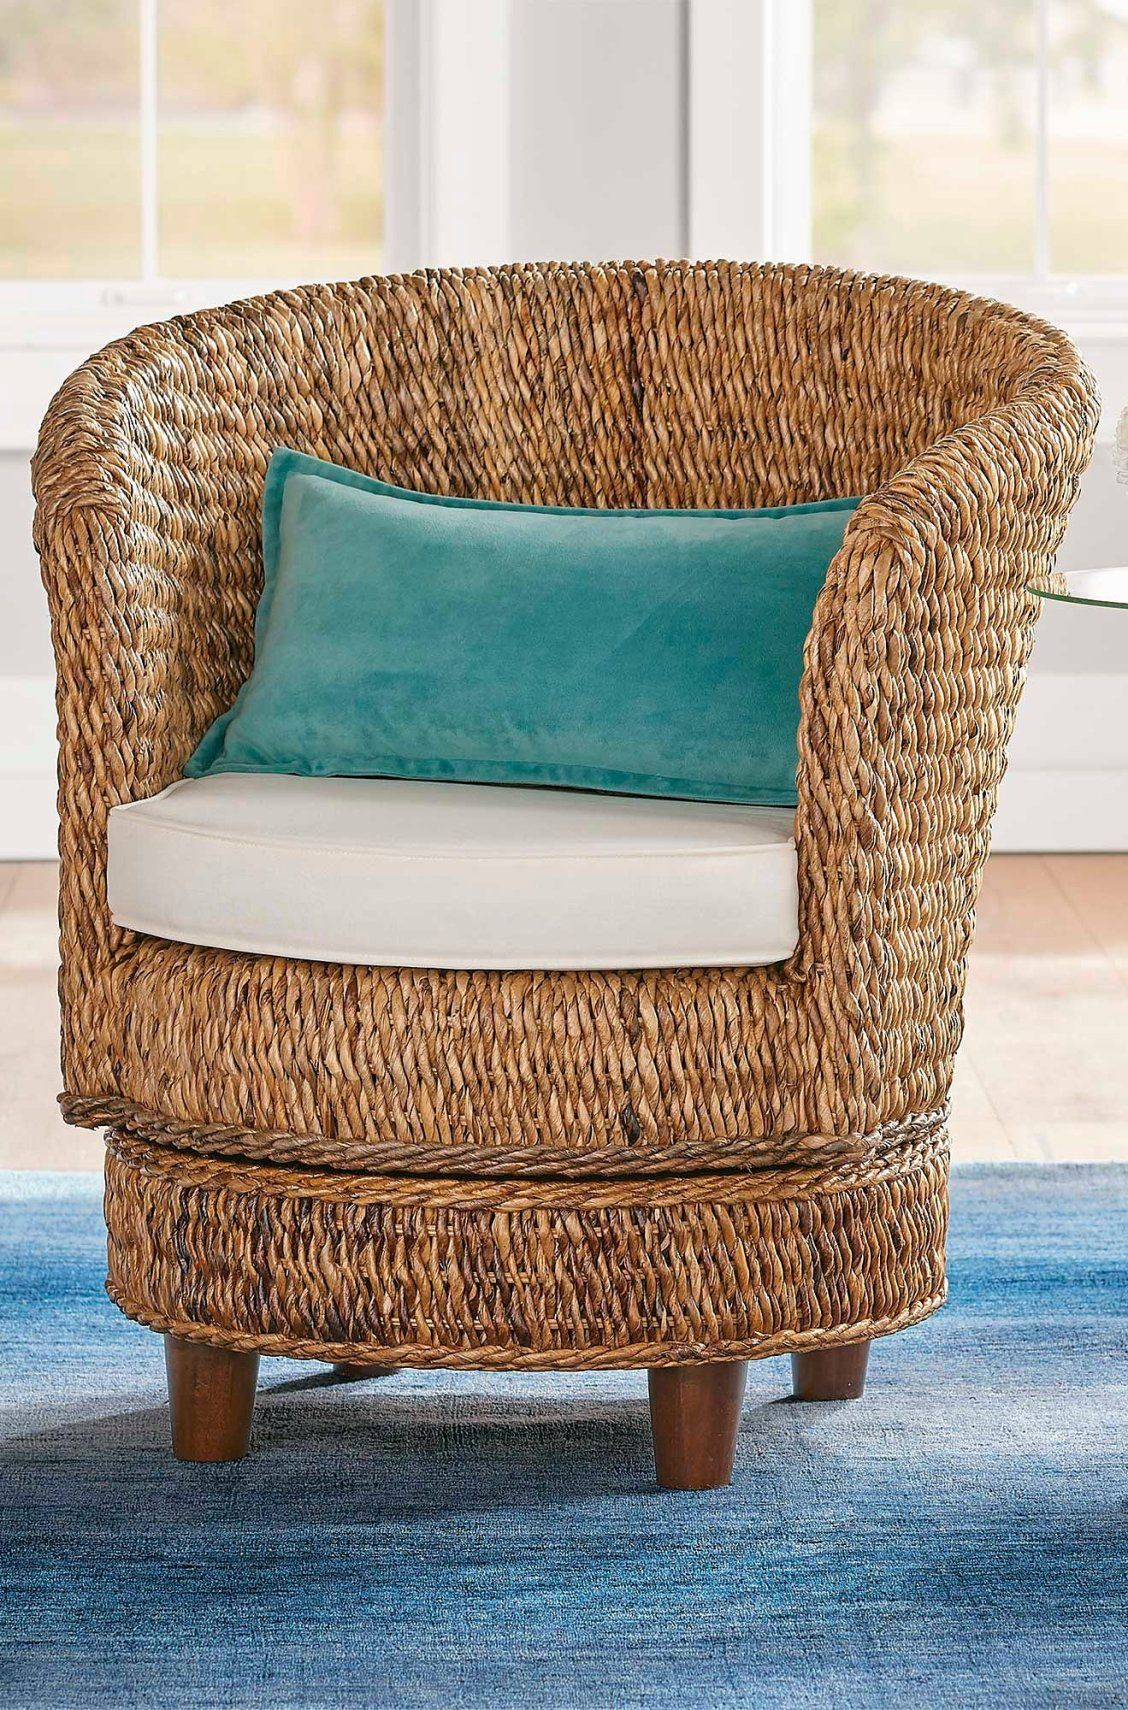 Pleasing Cyprus Swivel Chair Colorful Living Rooms In 2019 Chair Evergreenethics Interior Chair Design Evergreenethicsorg